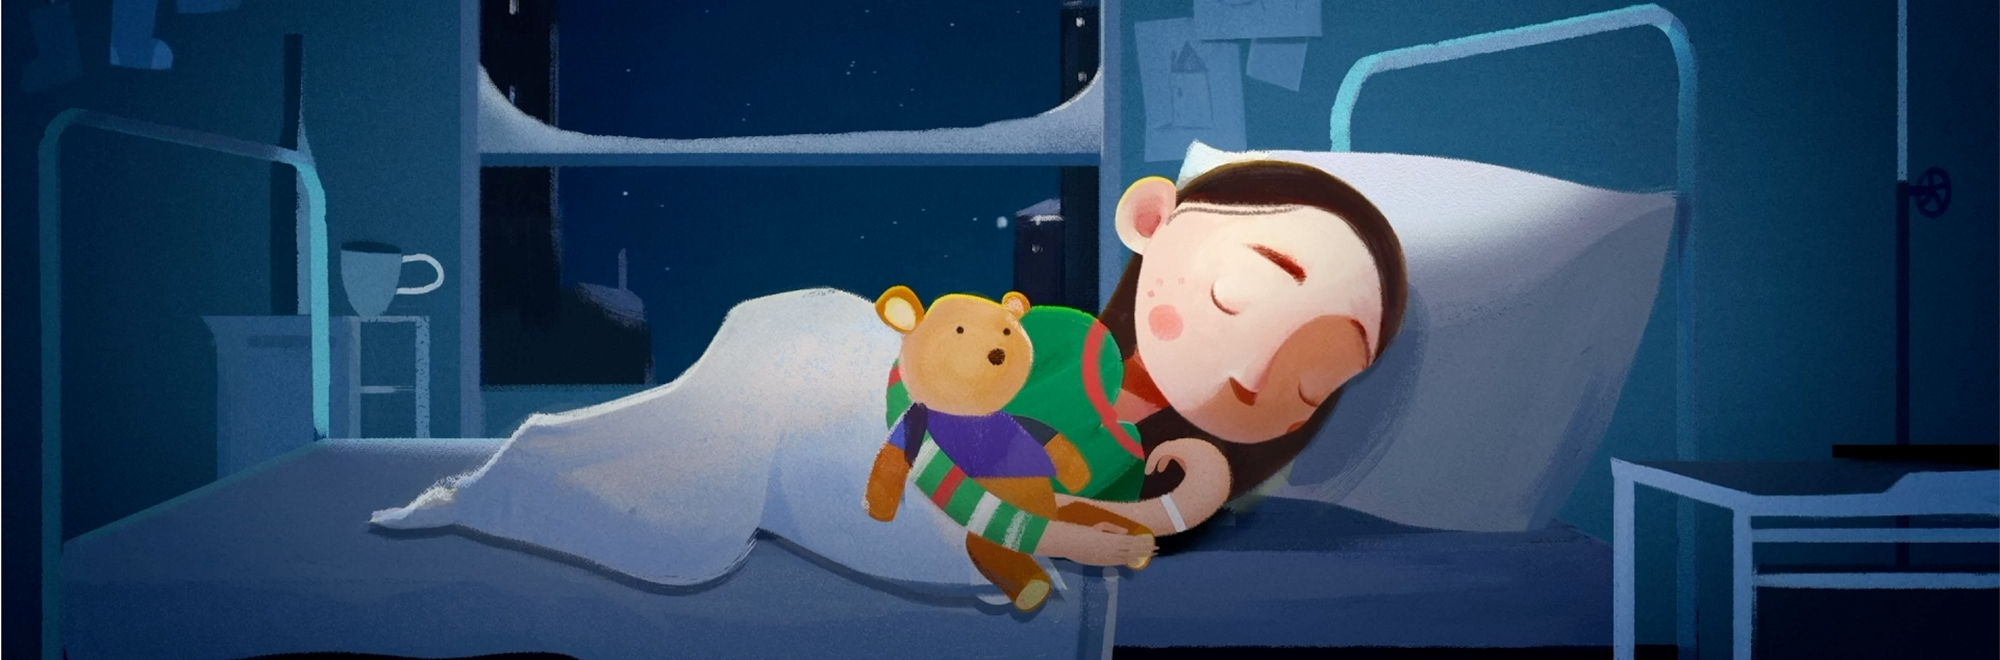 Great Ormond Street Hospital Charity launches 'Home for Christmas' campaign by adam&eveDDB